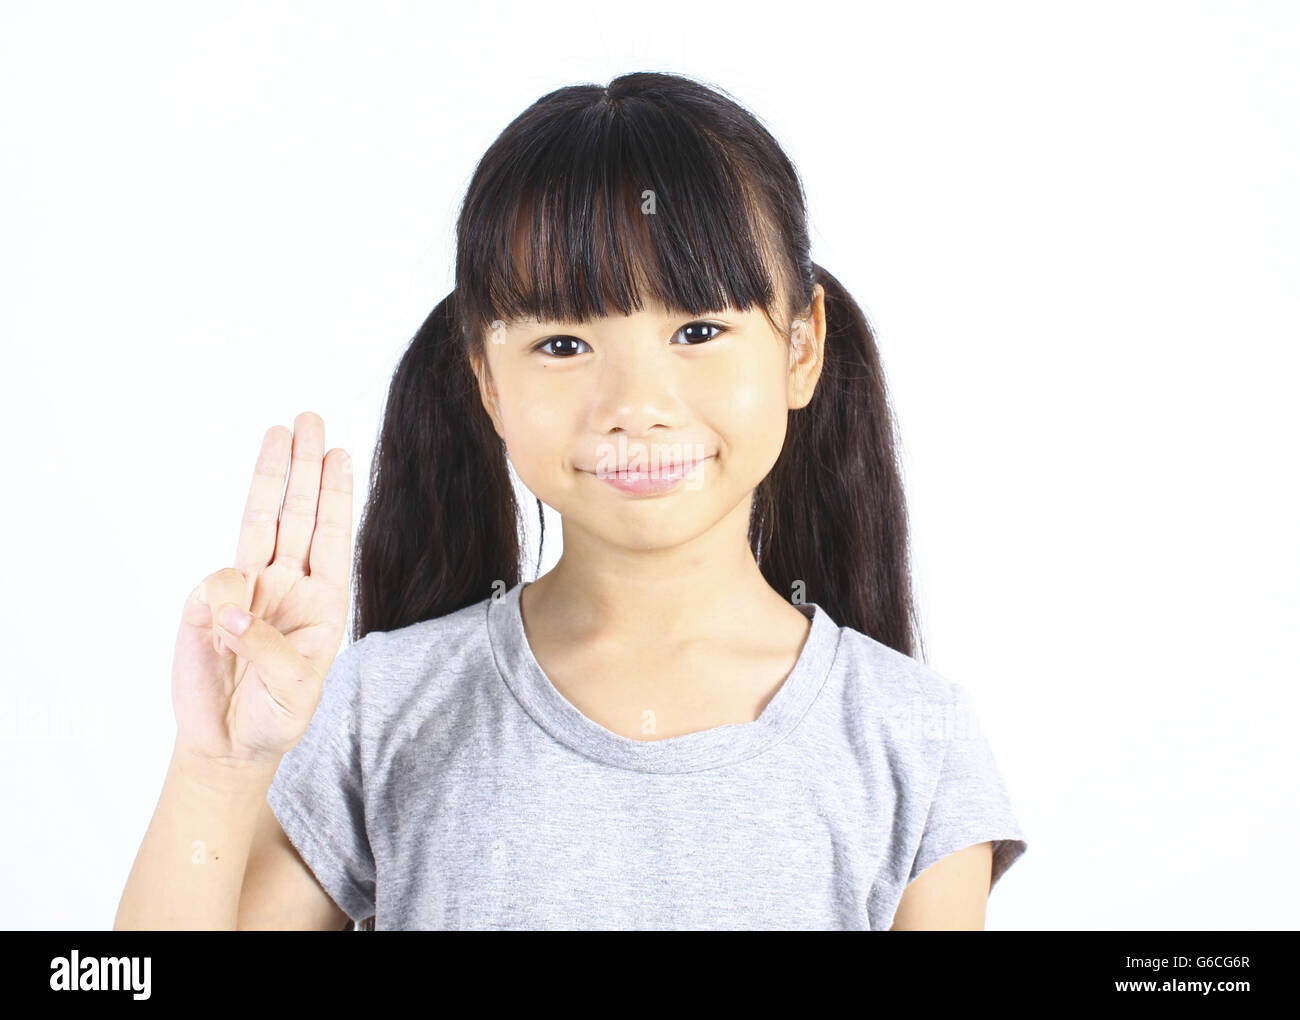 Portrait of young cute girl posting with three fingers isolated on white - Stock Image